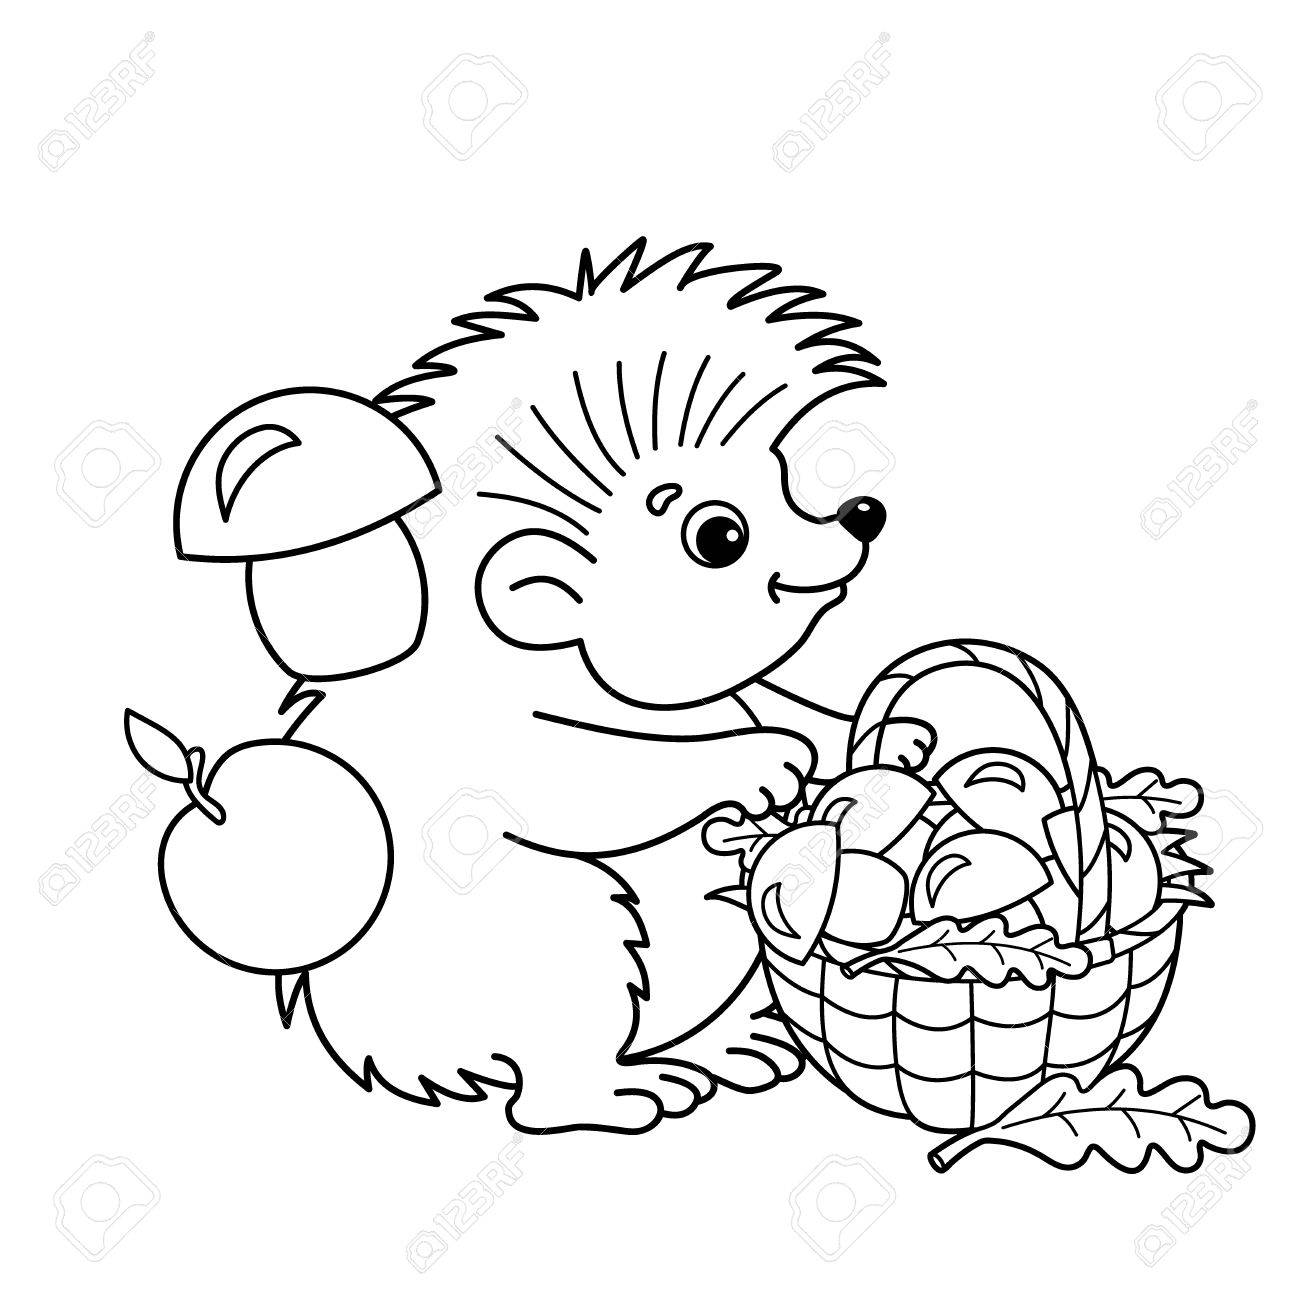 Coloring Page Outline Of Cartoon Hedgehog With Basket Mushrooms Summer Gifts Nature